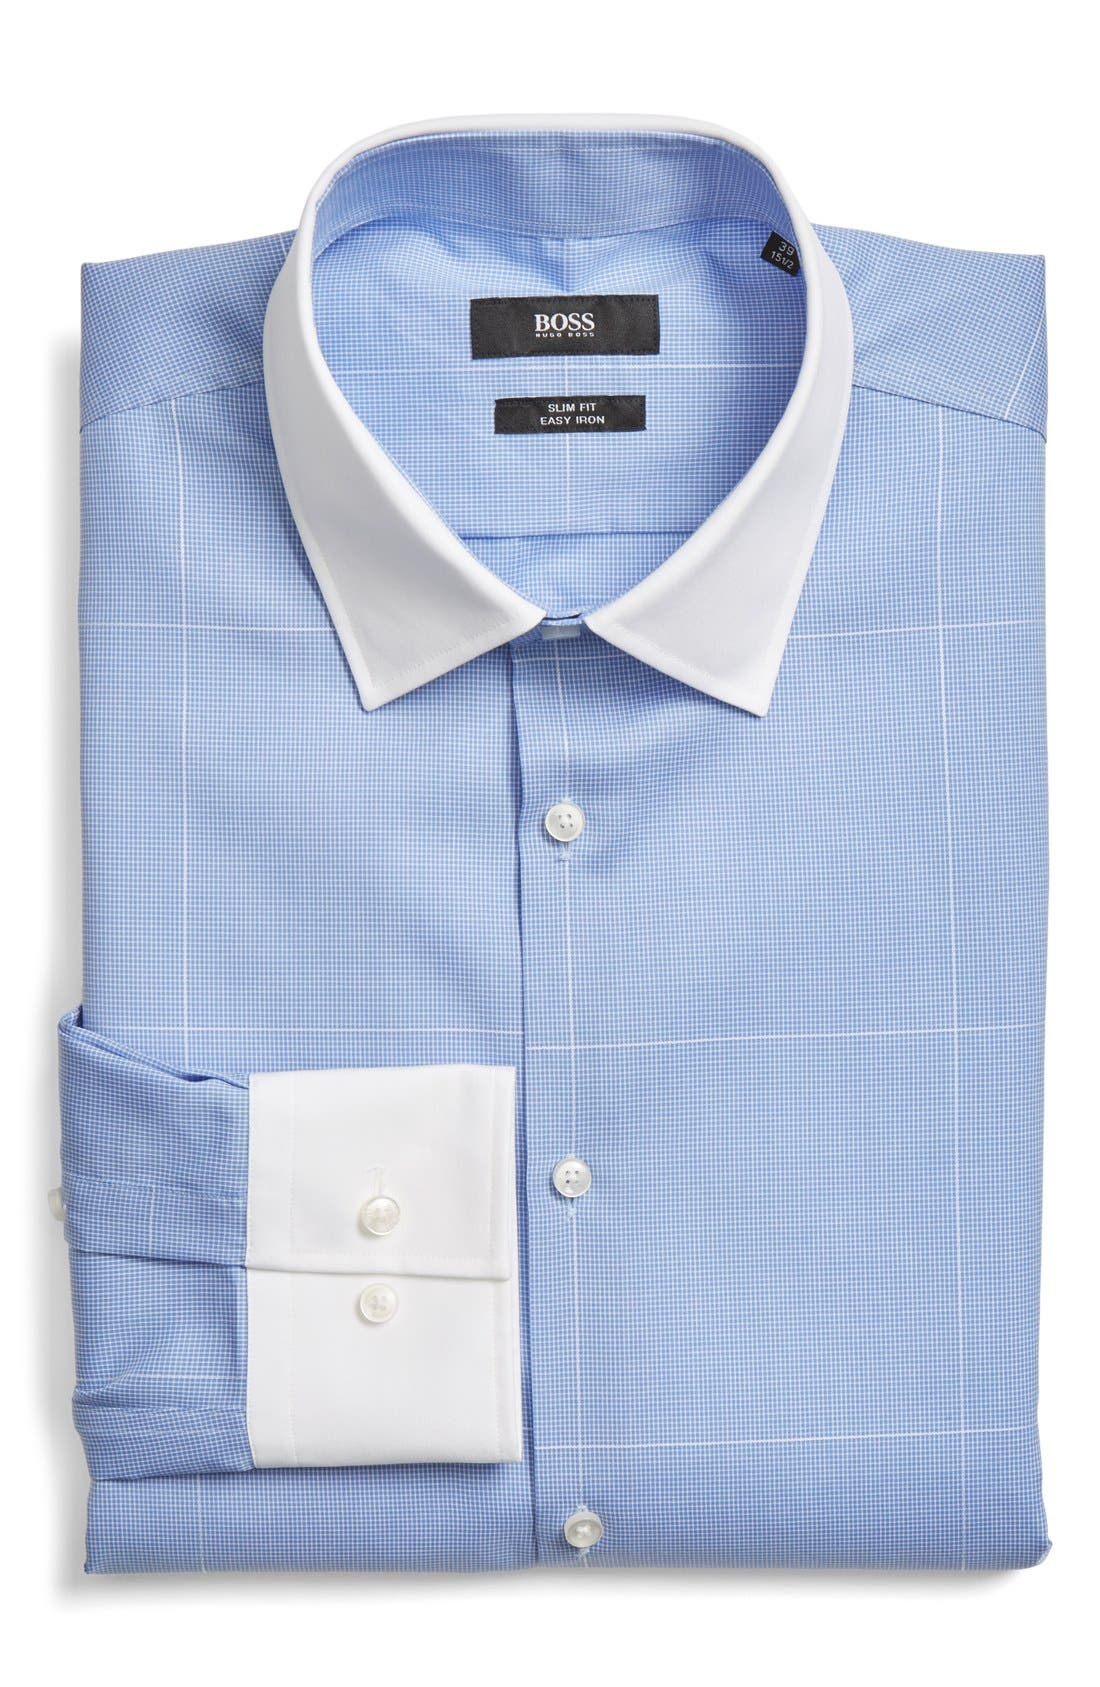 Main Image - BOSS WW Slim Fit Easy Iron Check Dress Shirt